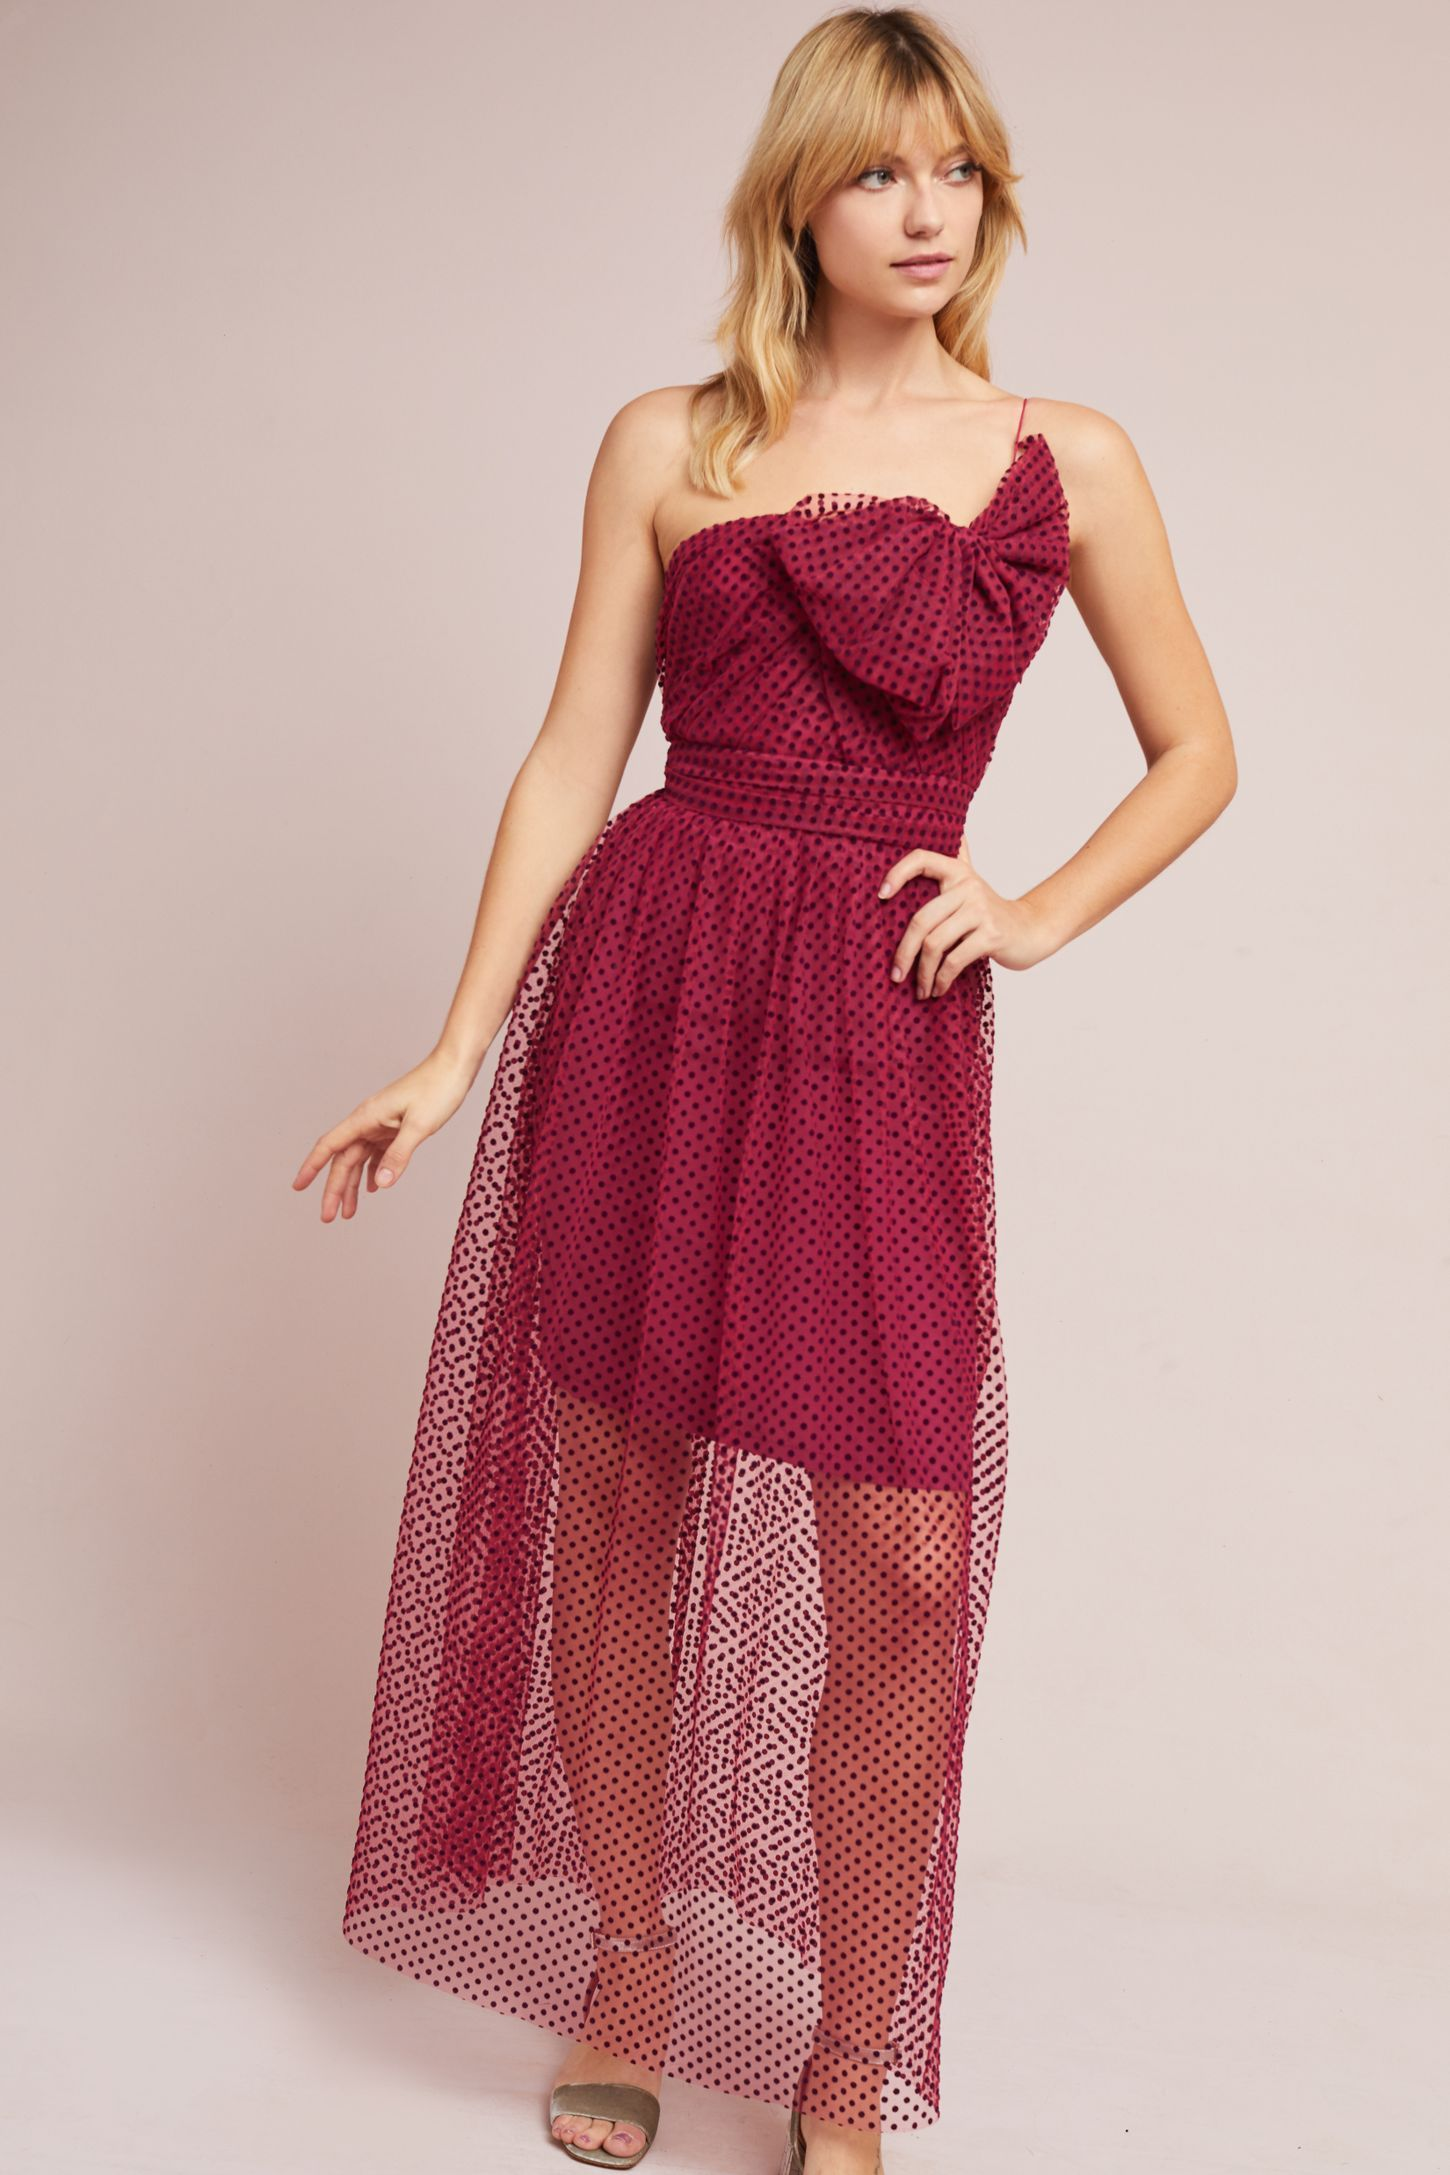 50 Stunning Autumn Wedding Guest Dresses 2020 (With images